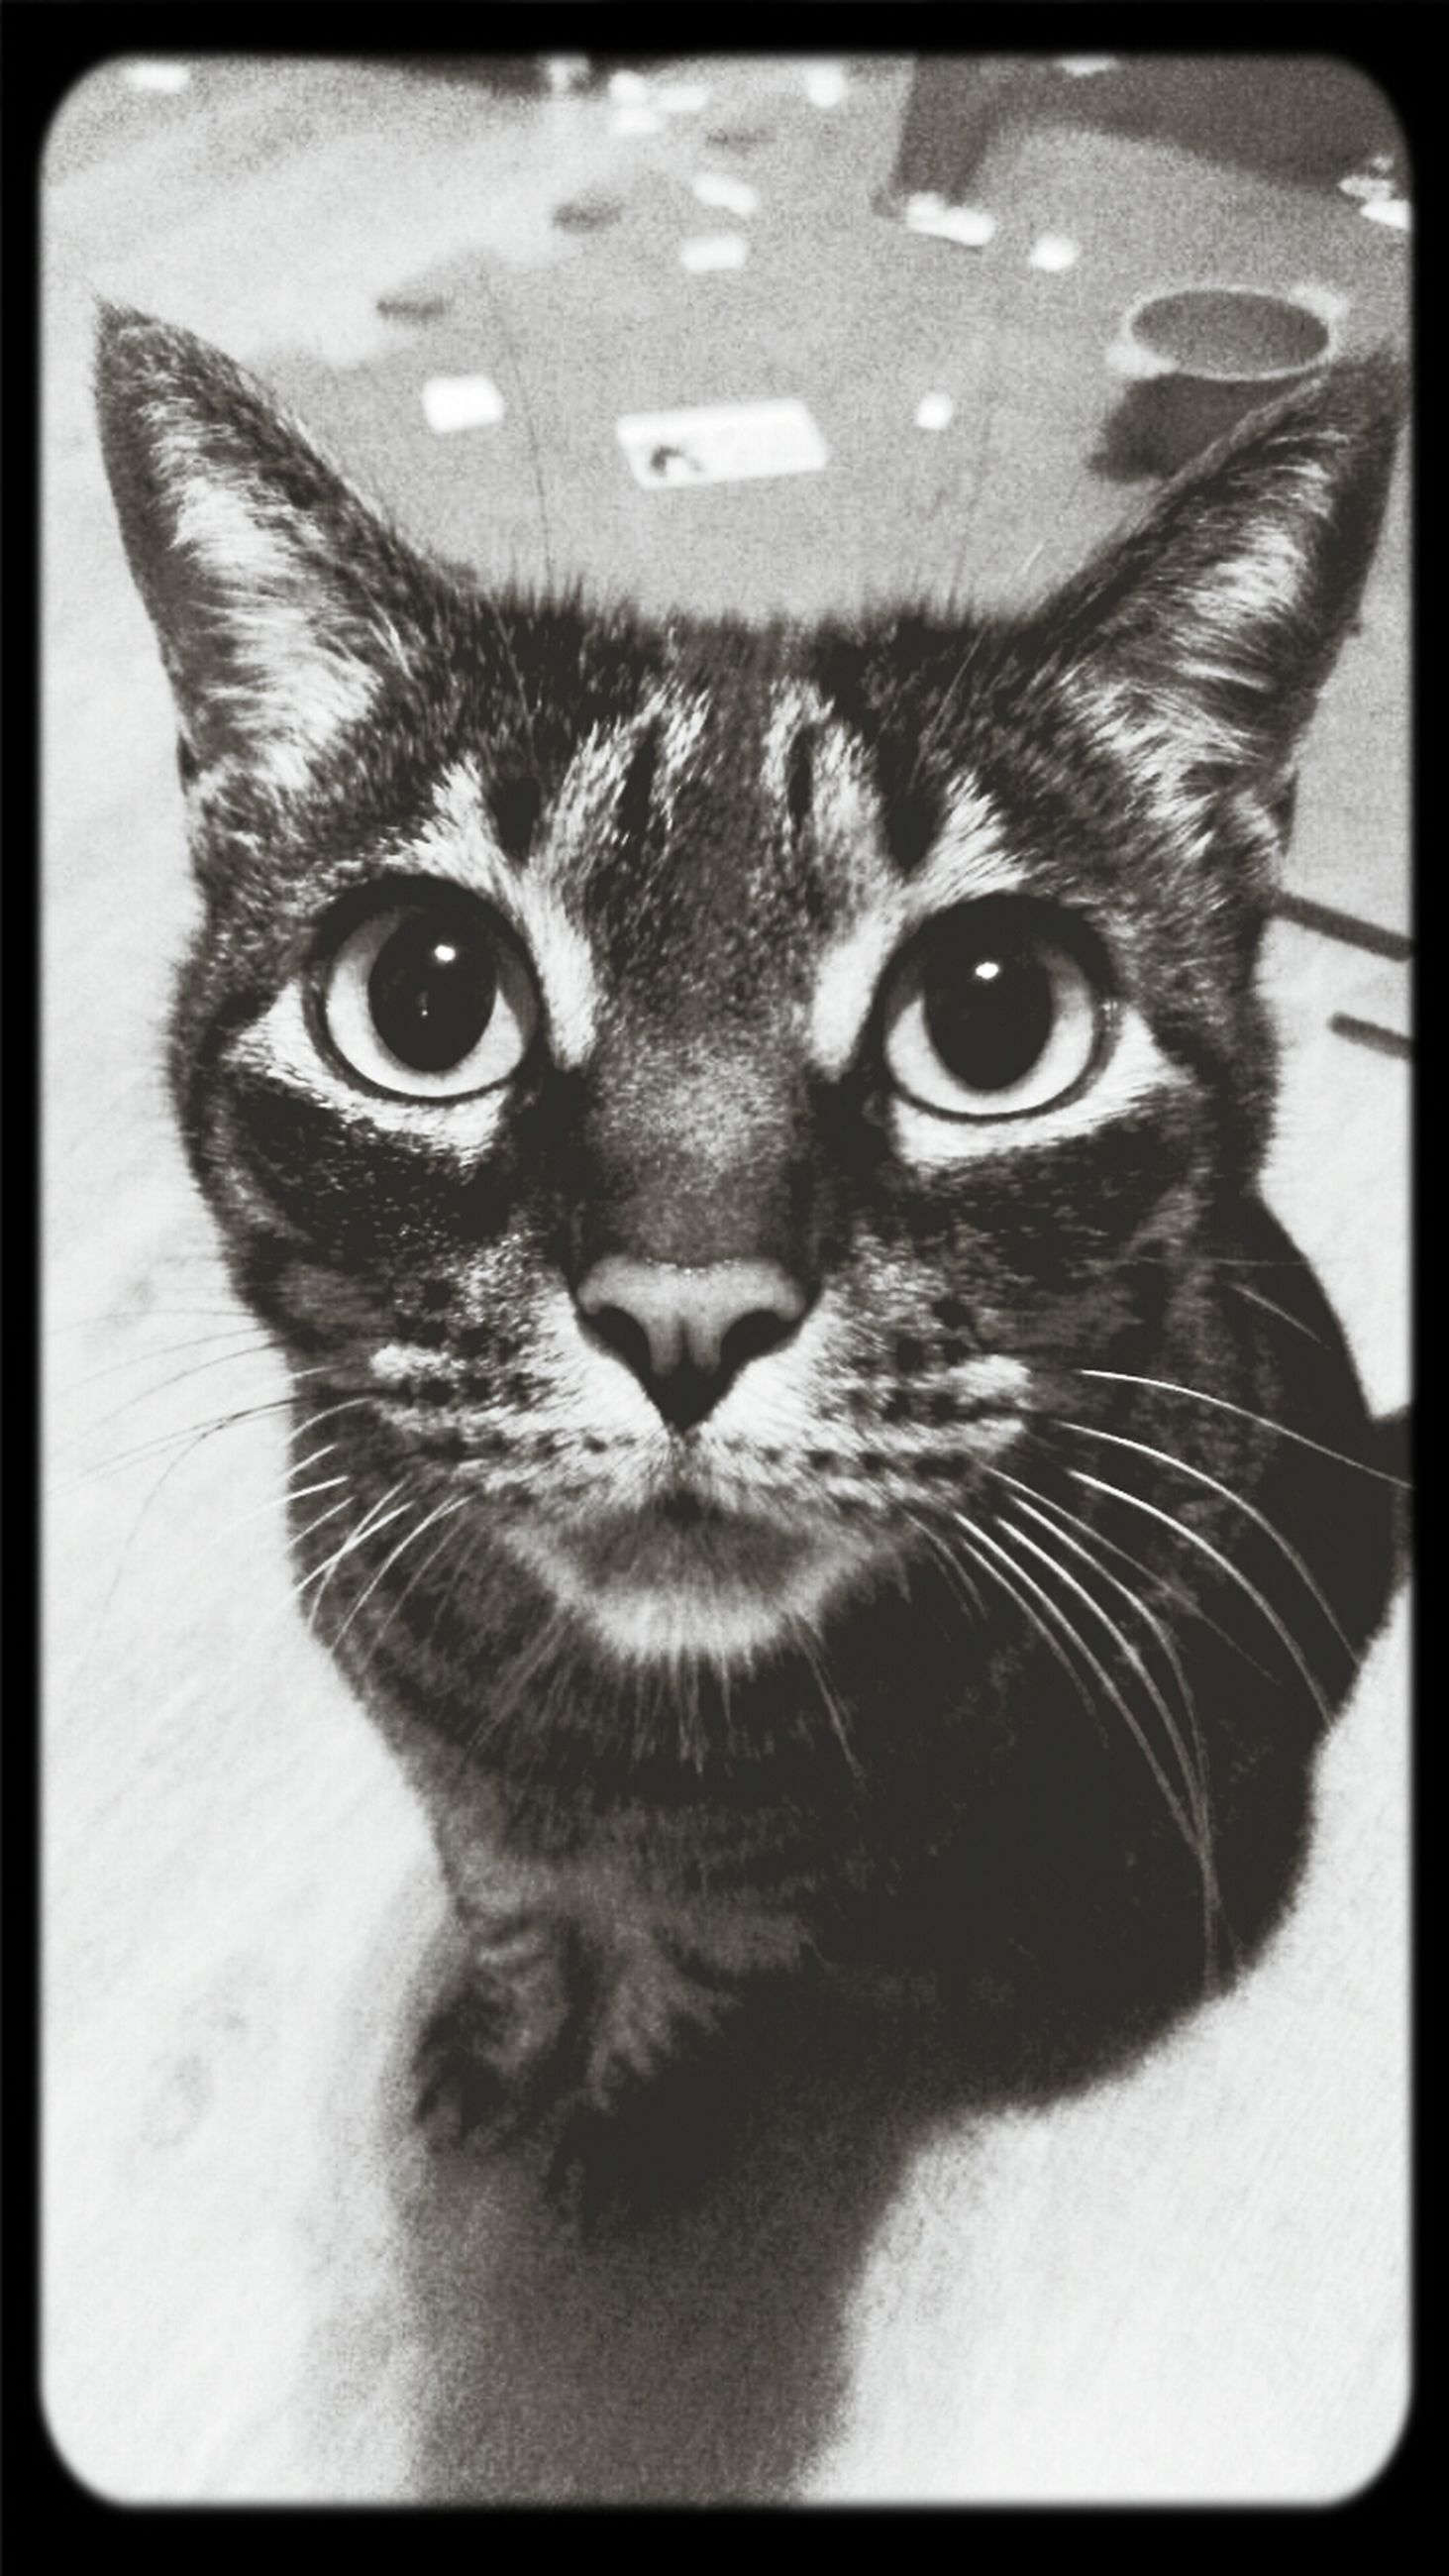 domestic cat, one animal, cat, animal themes, pets, feline, whisker, portrait, indoors, domestic animals, looking at camera, close-up, transfer print, animal head, animal eye, mammal, auto post production filter, staring, alertness, animal body part